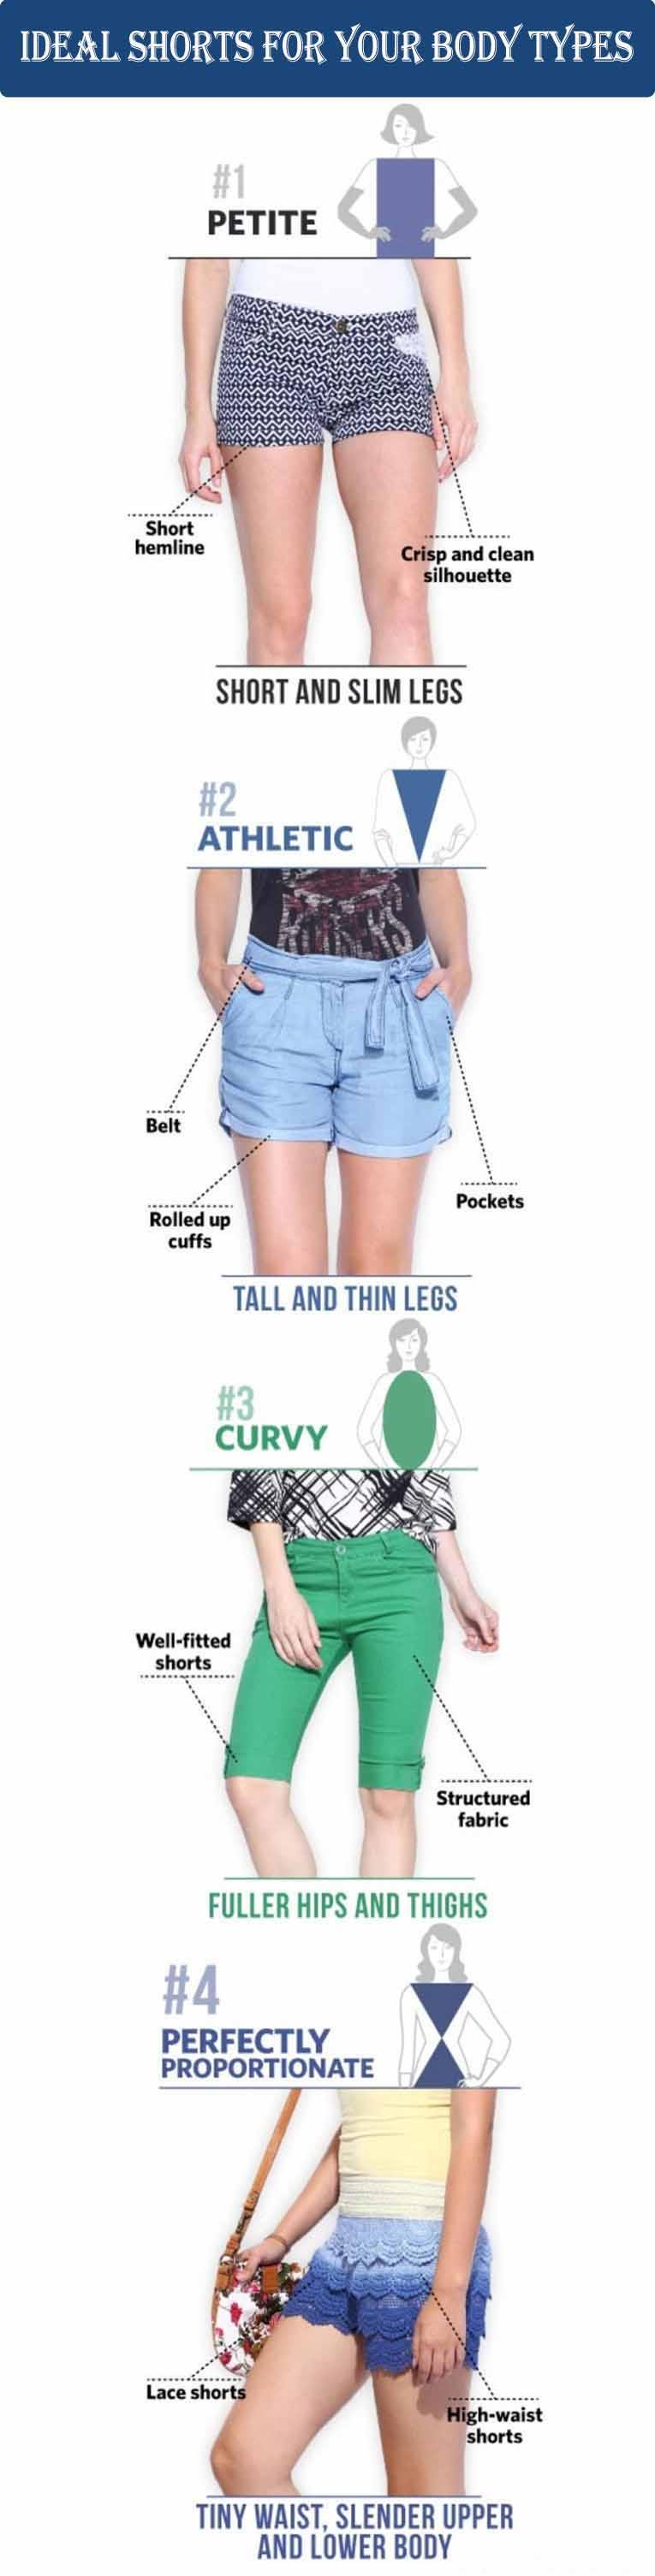 shorts for body types, ideal shorts for your body type